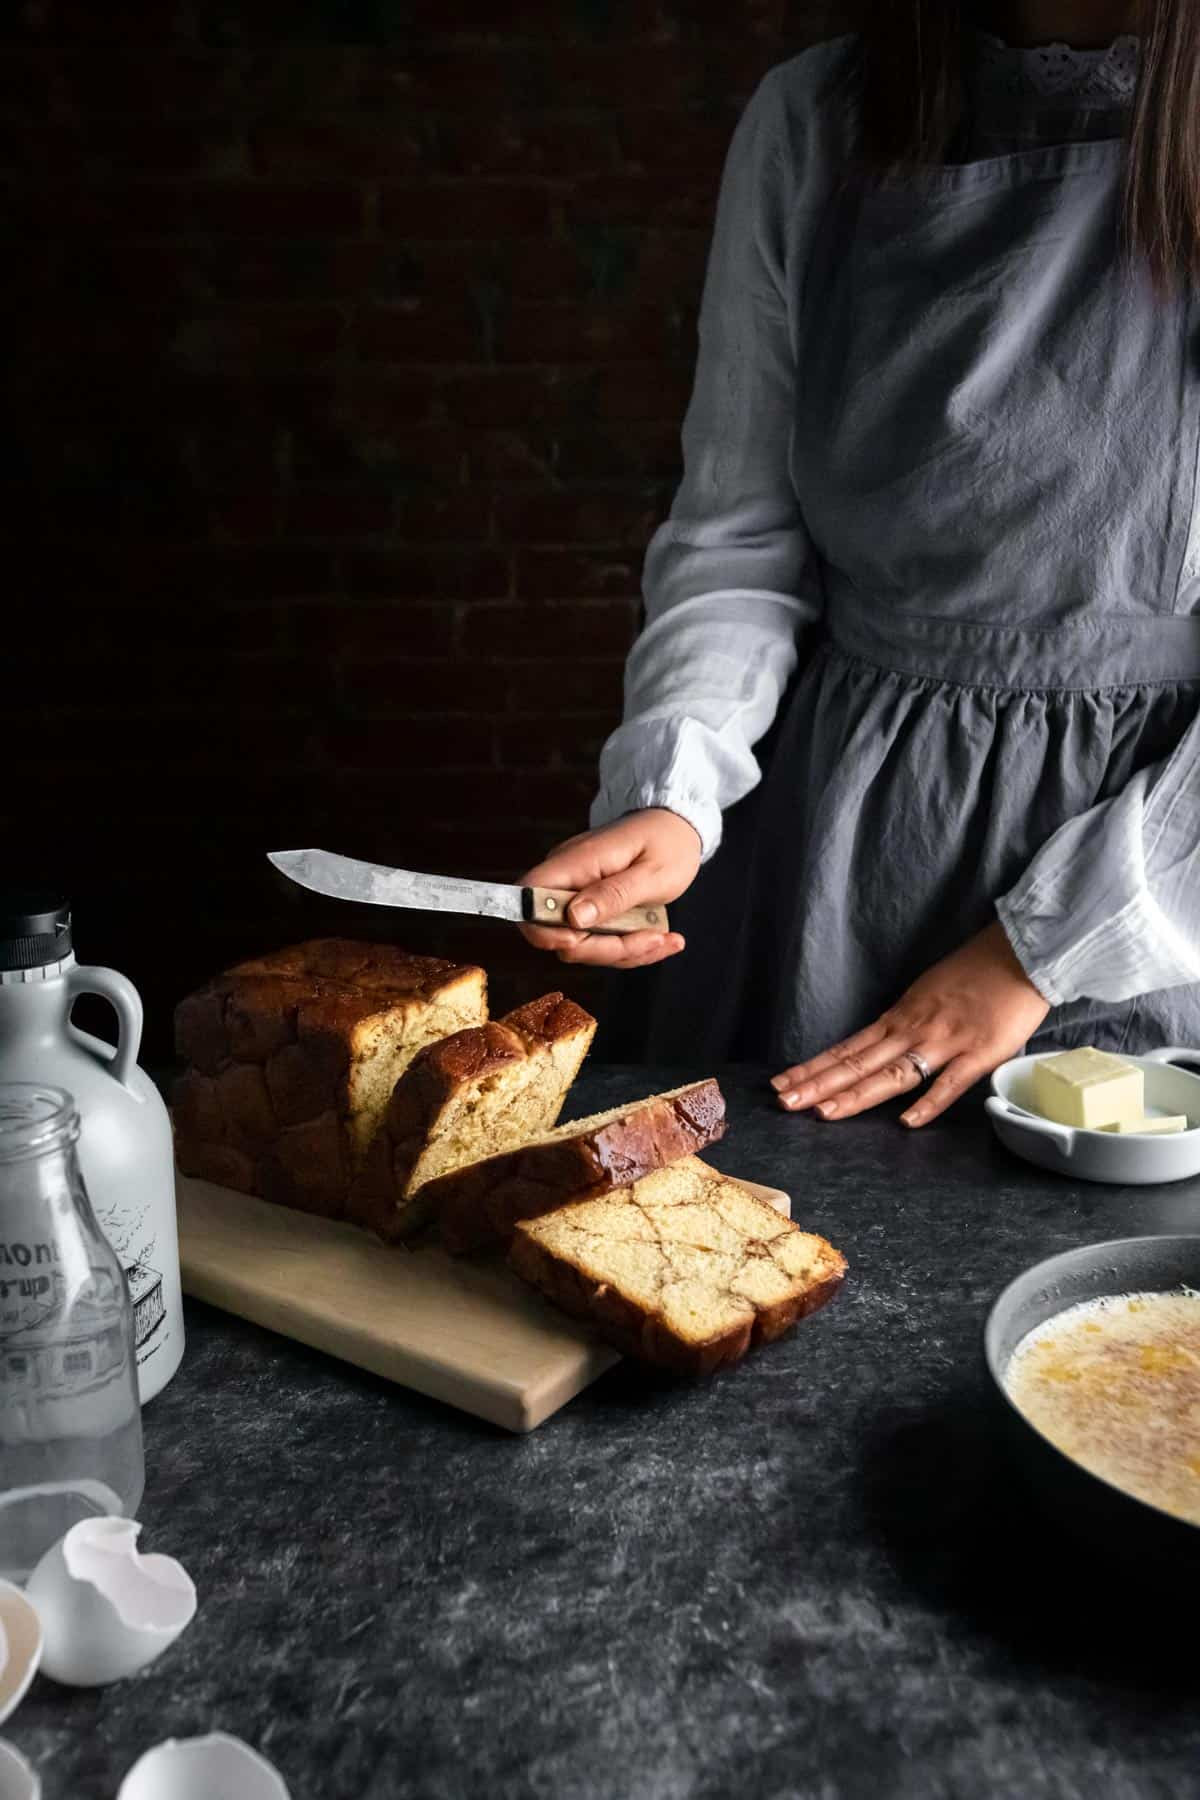 A woman Slicing the Monkey Bread Pullman Loaf with an old knife. A bowl of French Toast batter, cracked egg shells, a jug of maple syrup and butter are on the table.